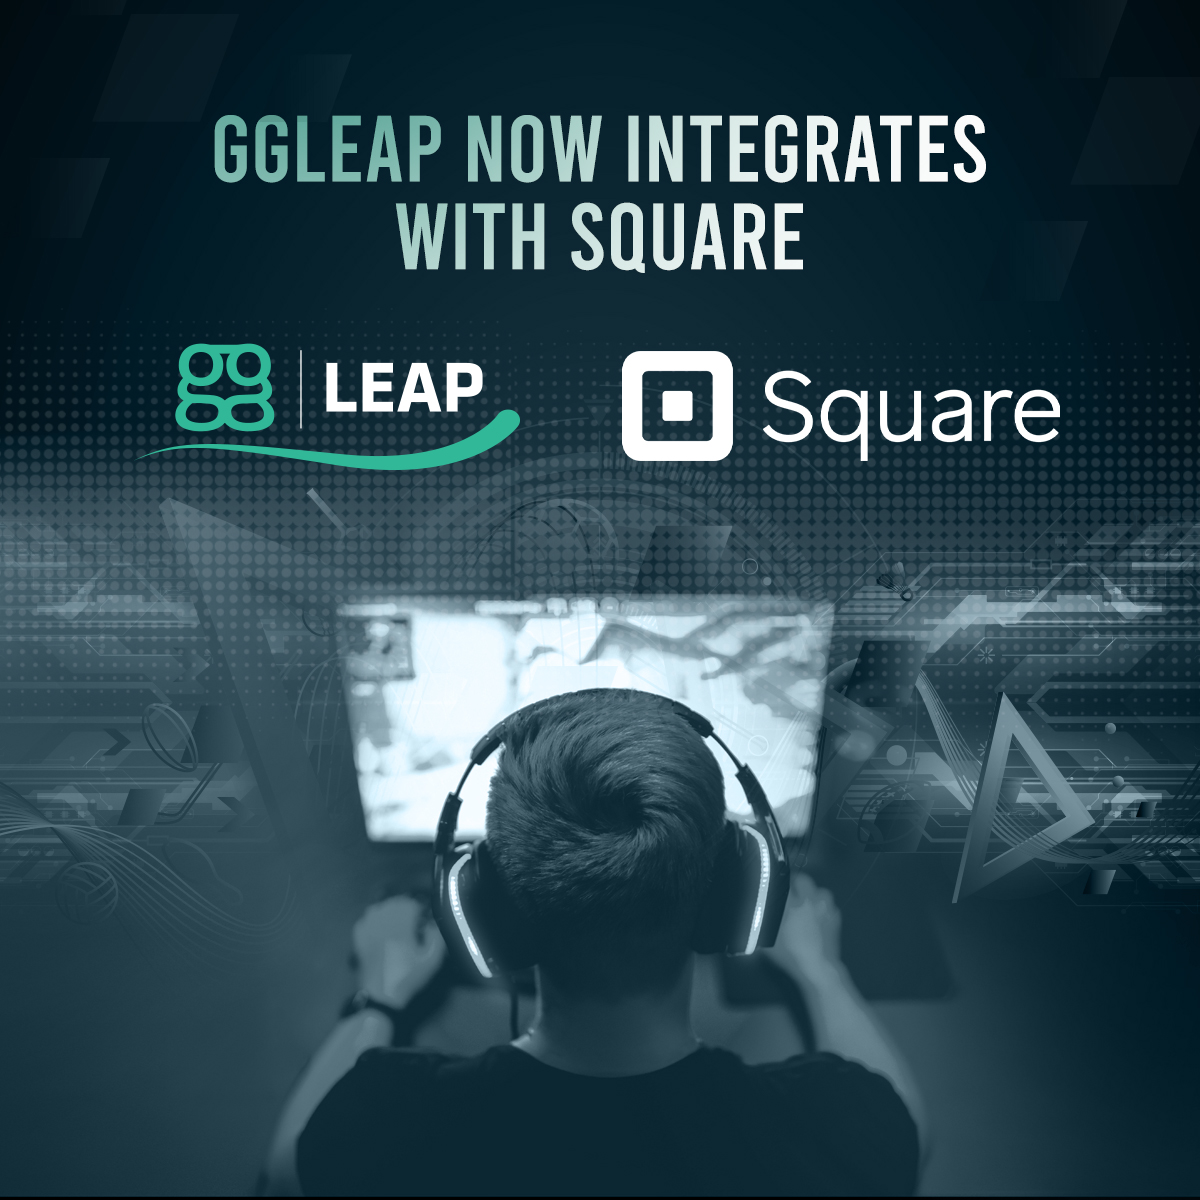 ggLeap and Square Integration Changing the Way We Game